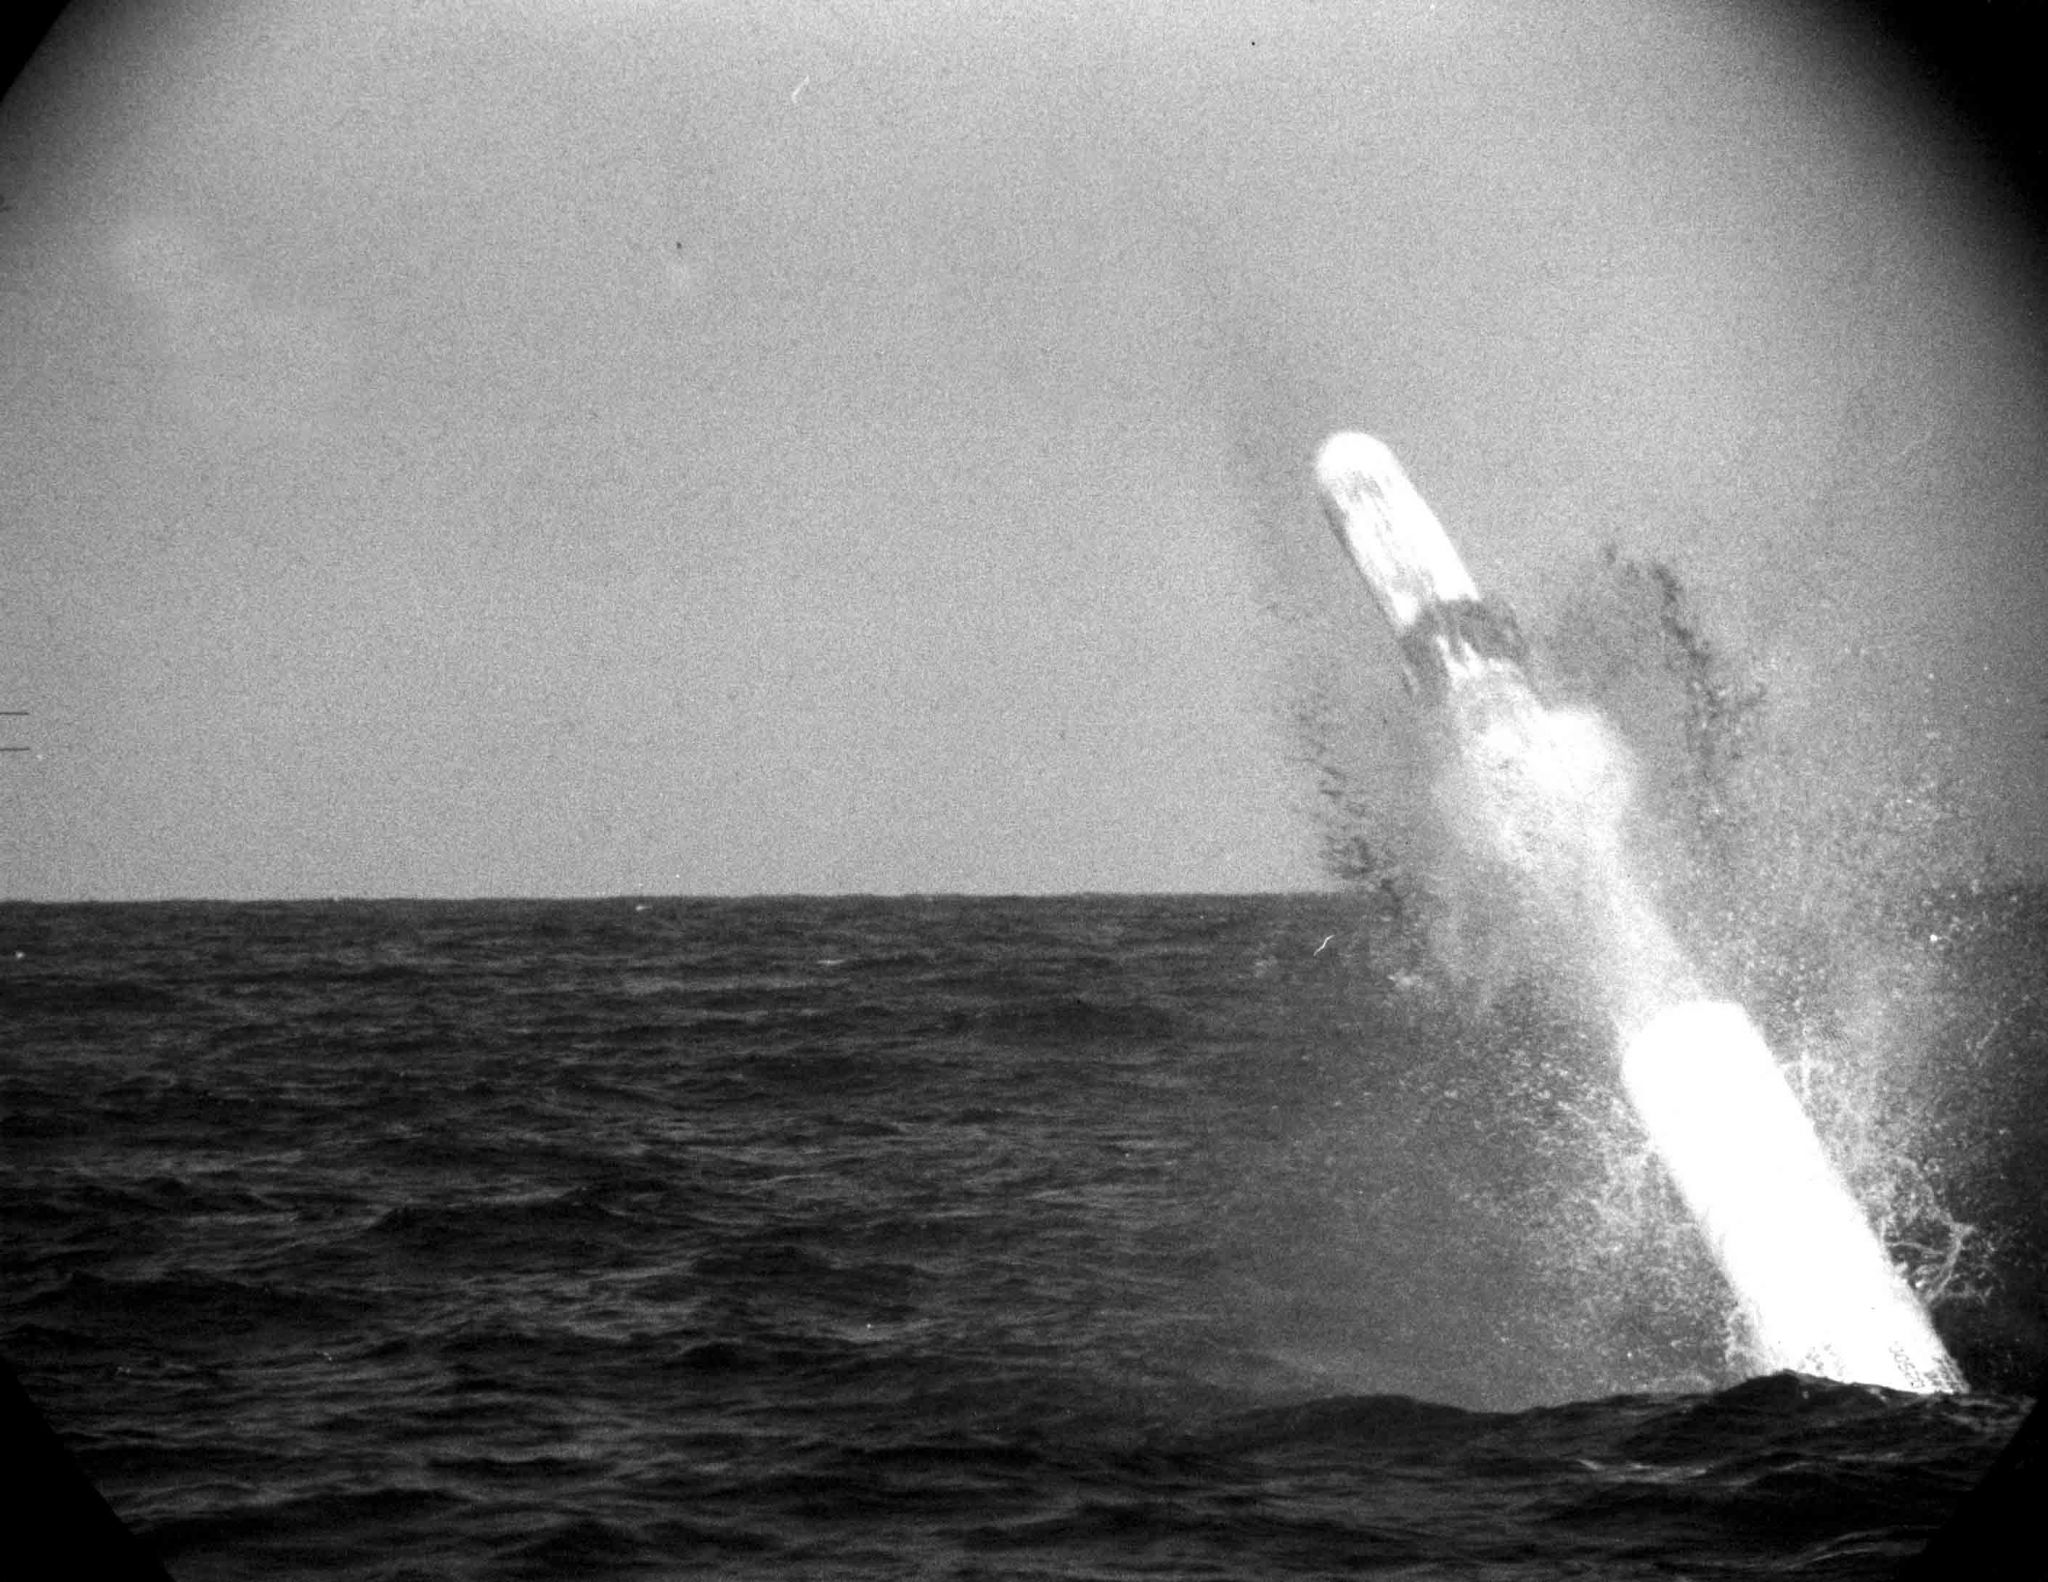 Sub harpoon firing from periscope HMS Courageous